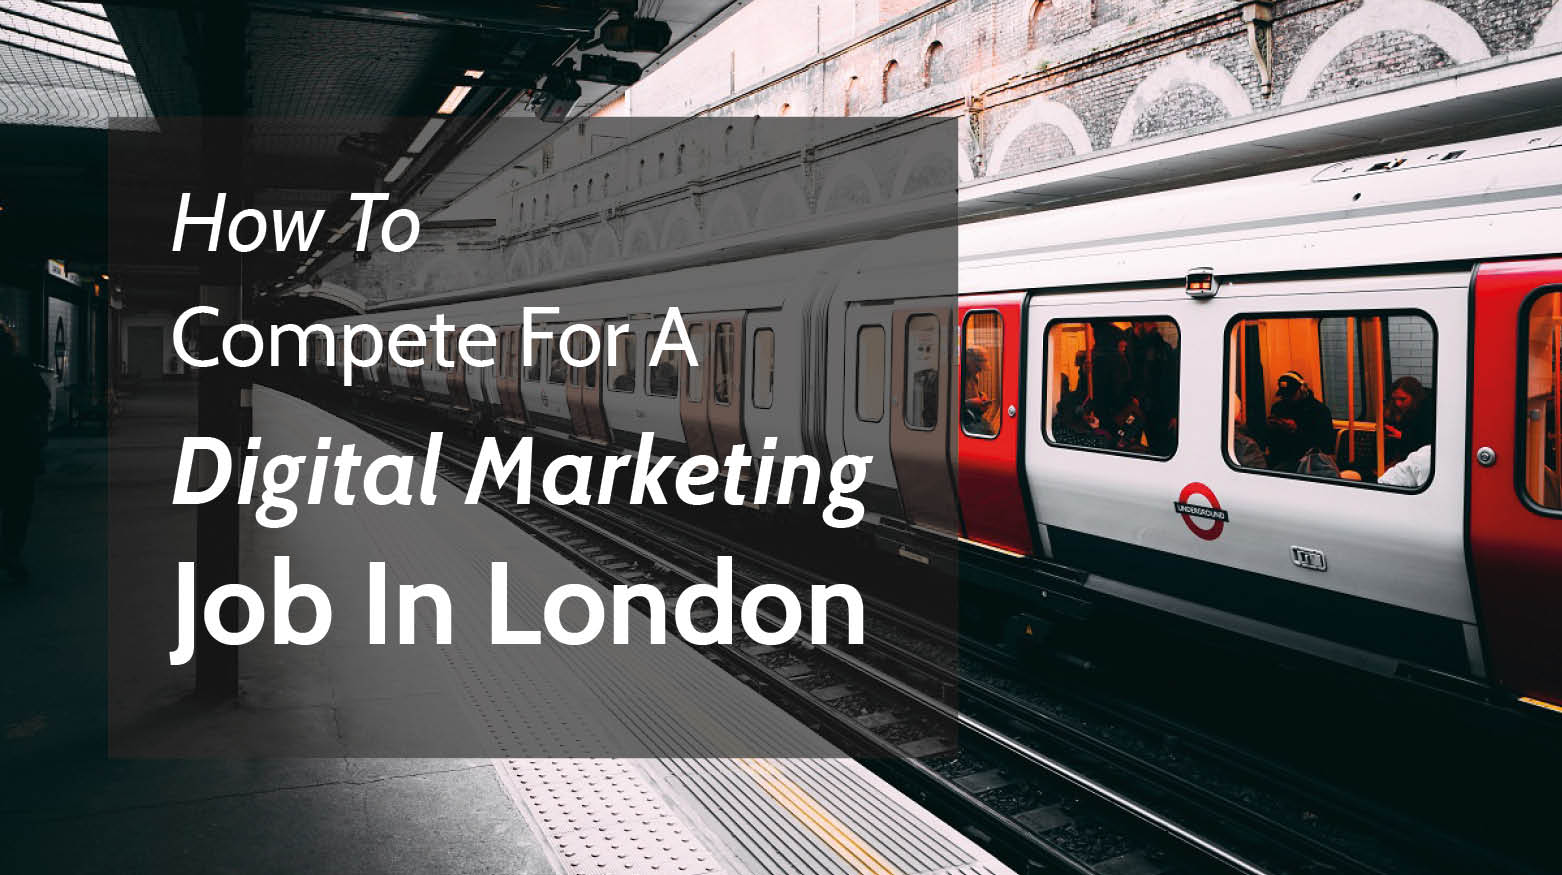 How to compete for a graduate digital marketing job in London